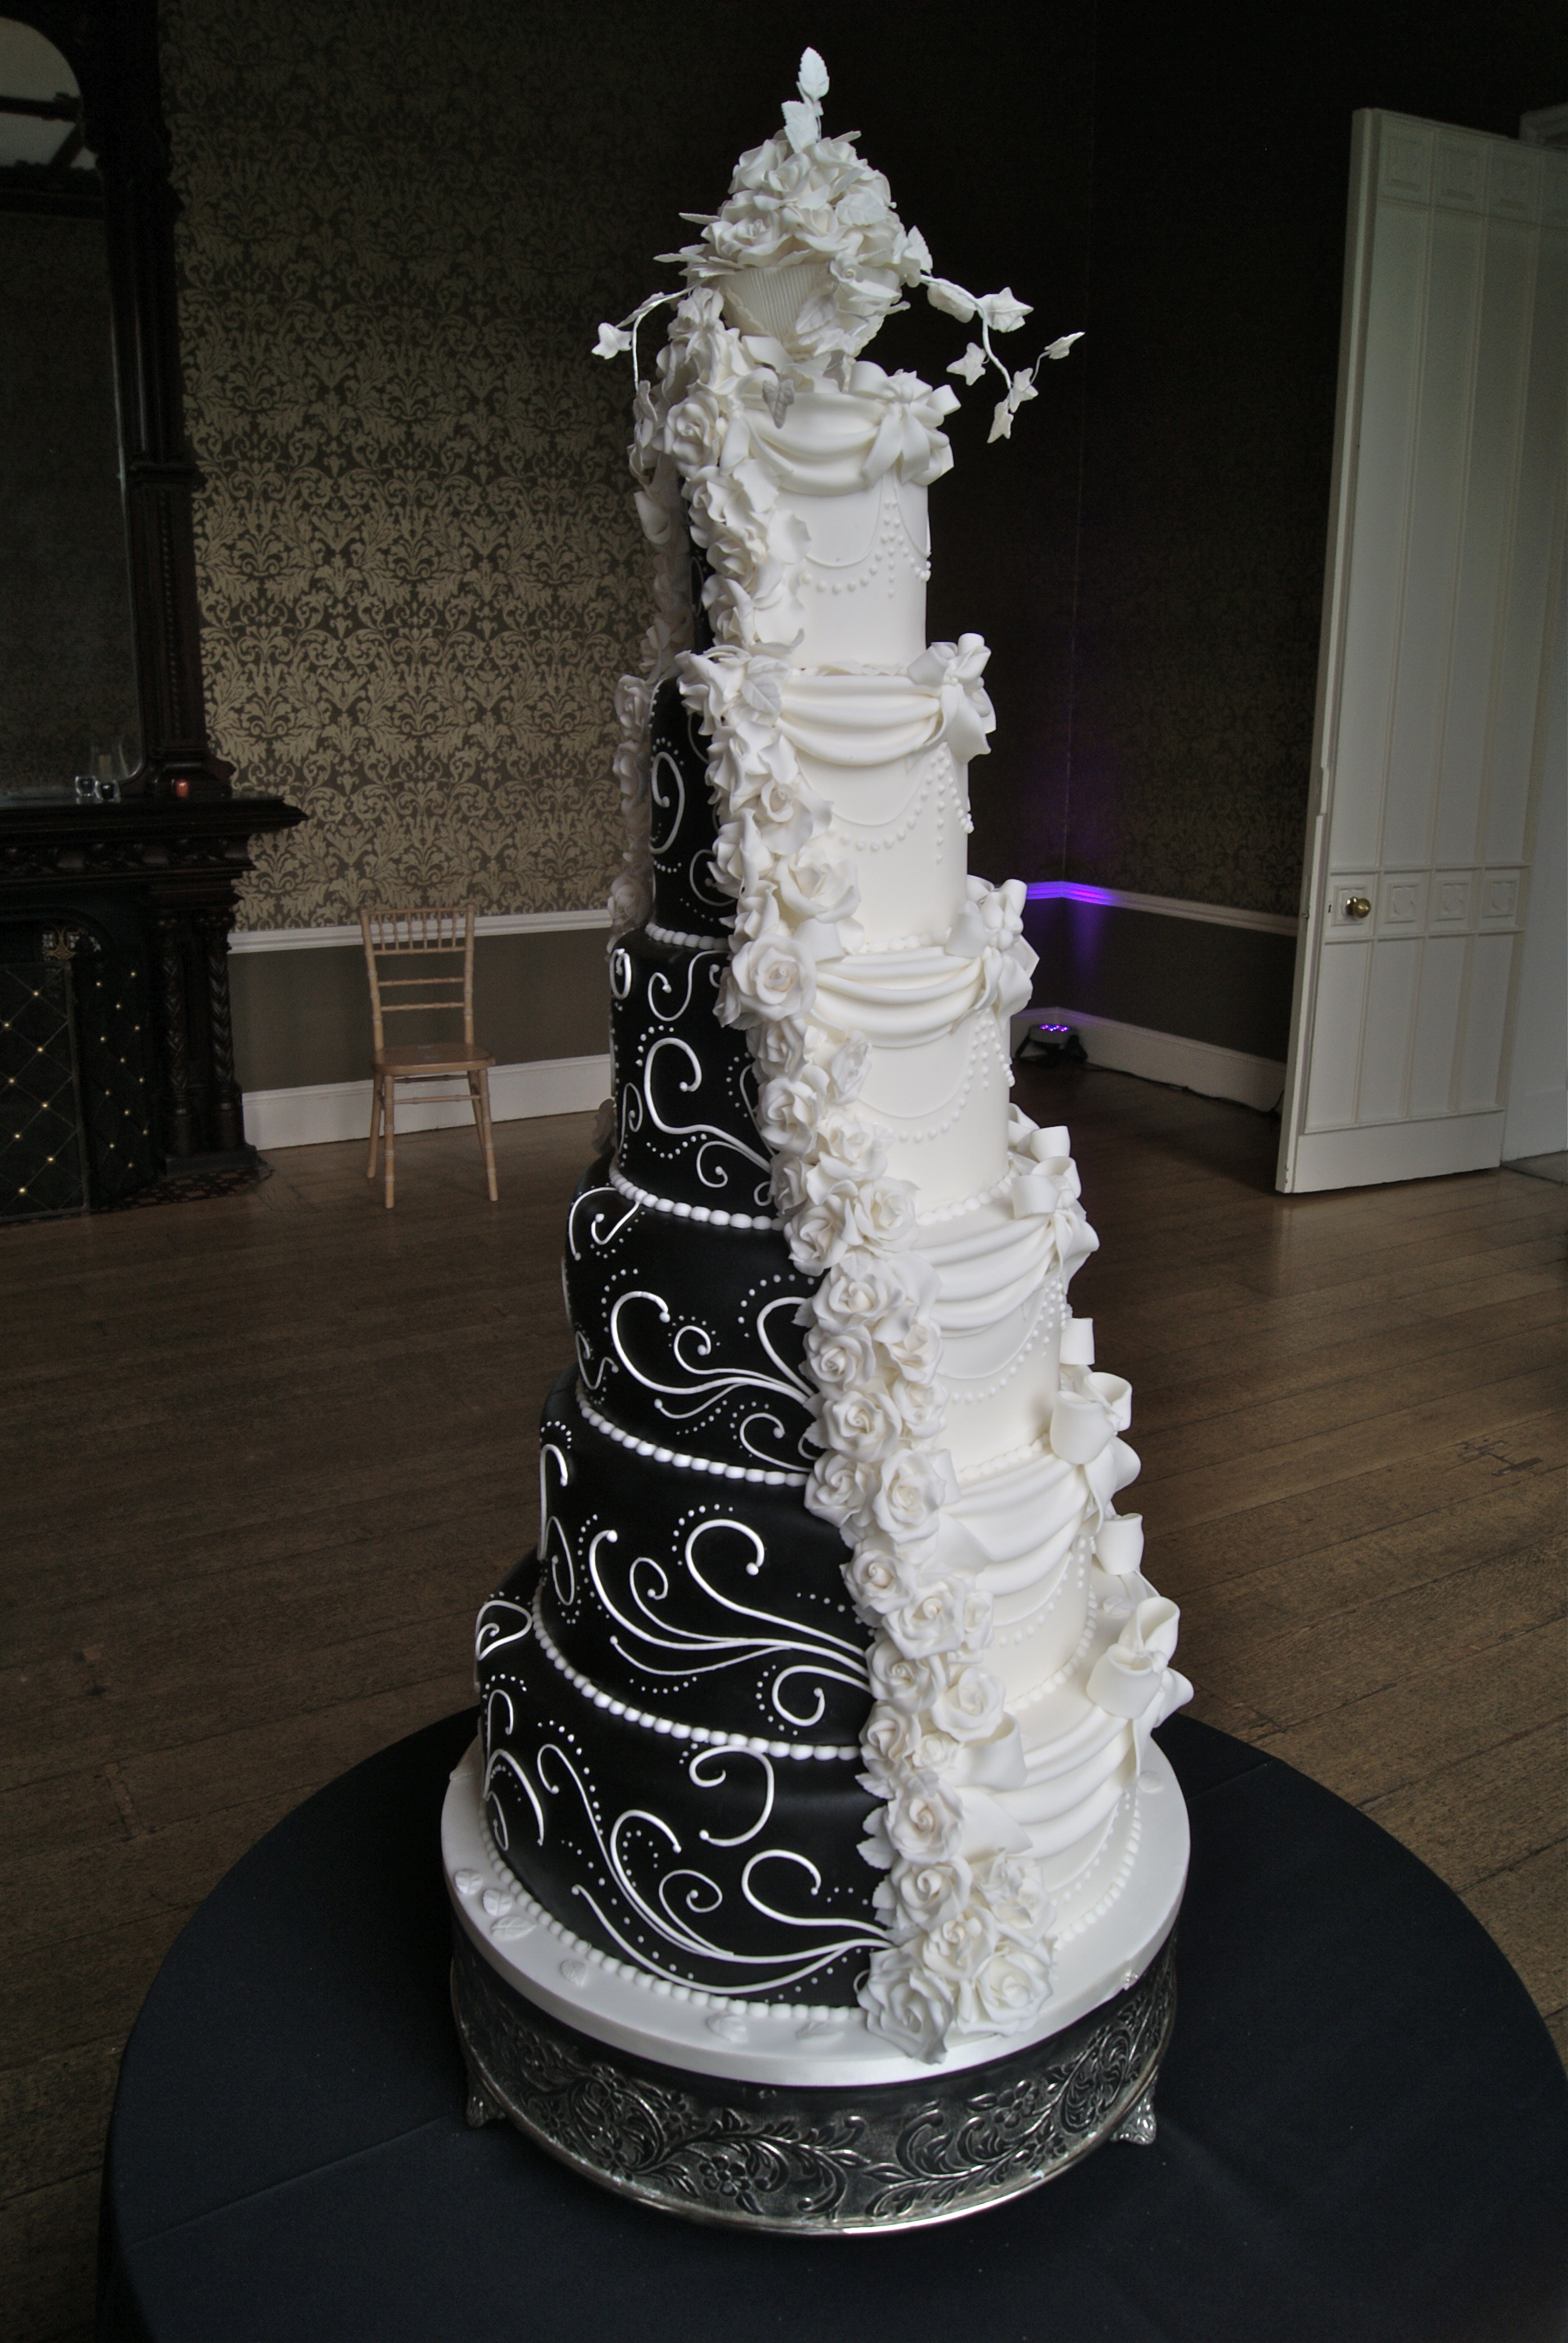 What's The Cost Of A Wedding Cake?